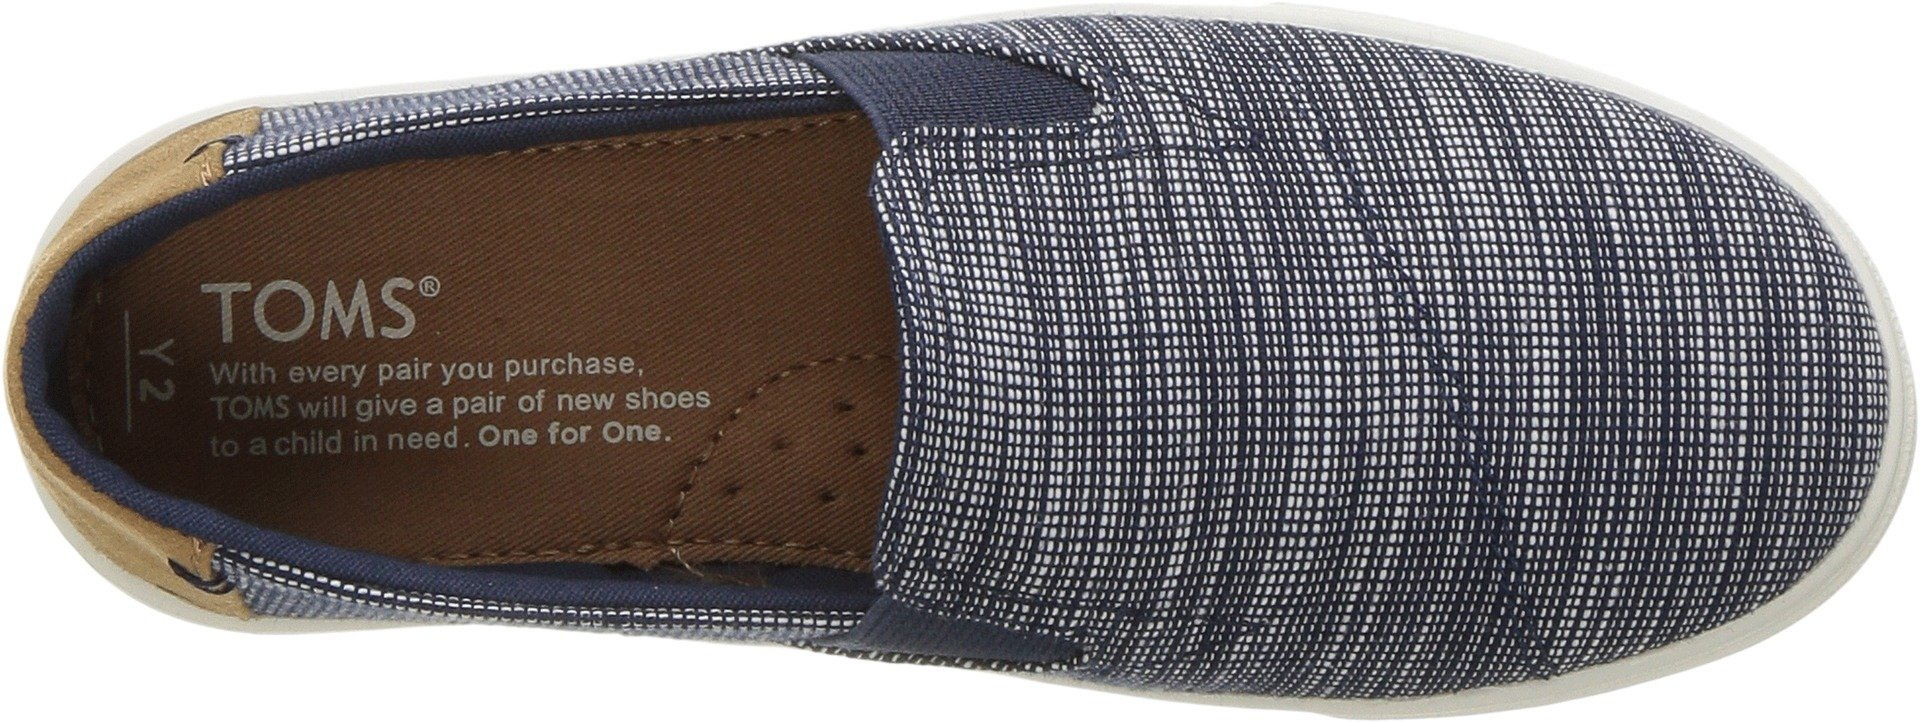 TOMS Kids Unisex Luca (Little Kid/Big Kid) Navy Striped Chambray 13 M US Little Kid by TOMS Kids (Image #2)